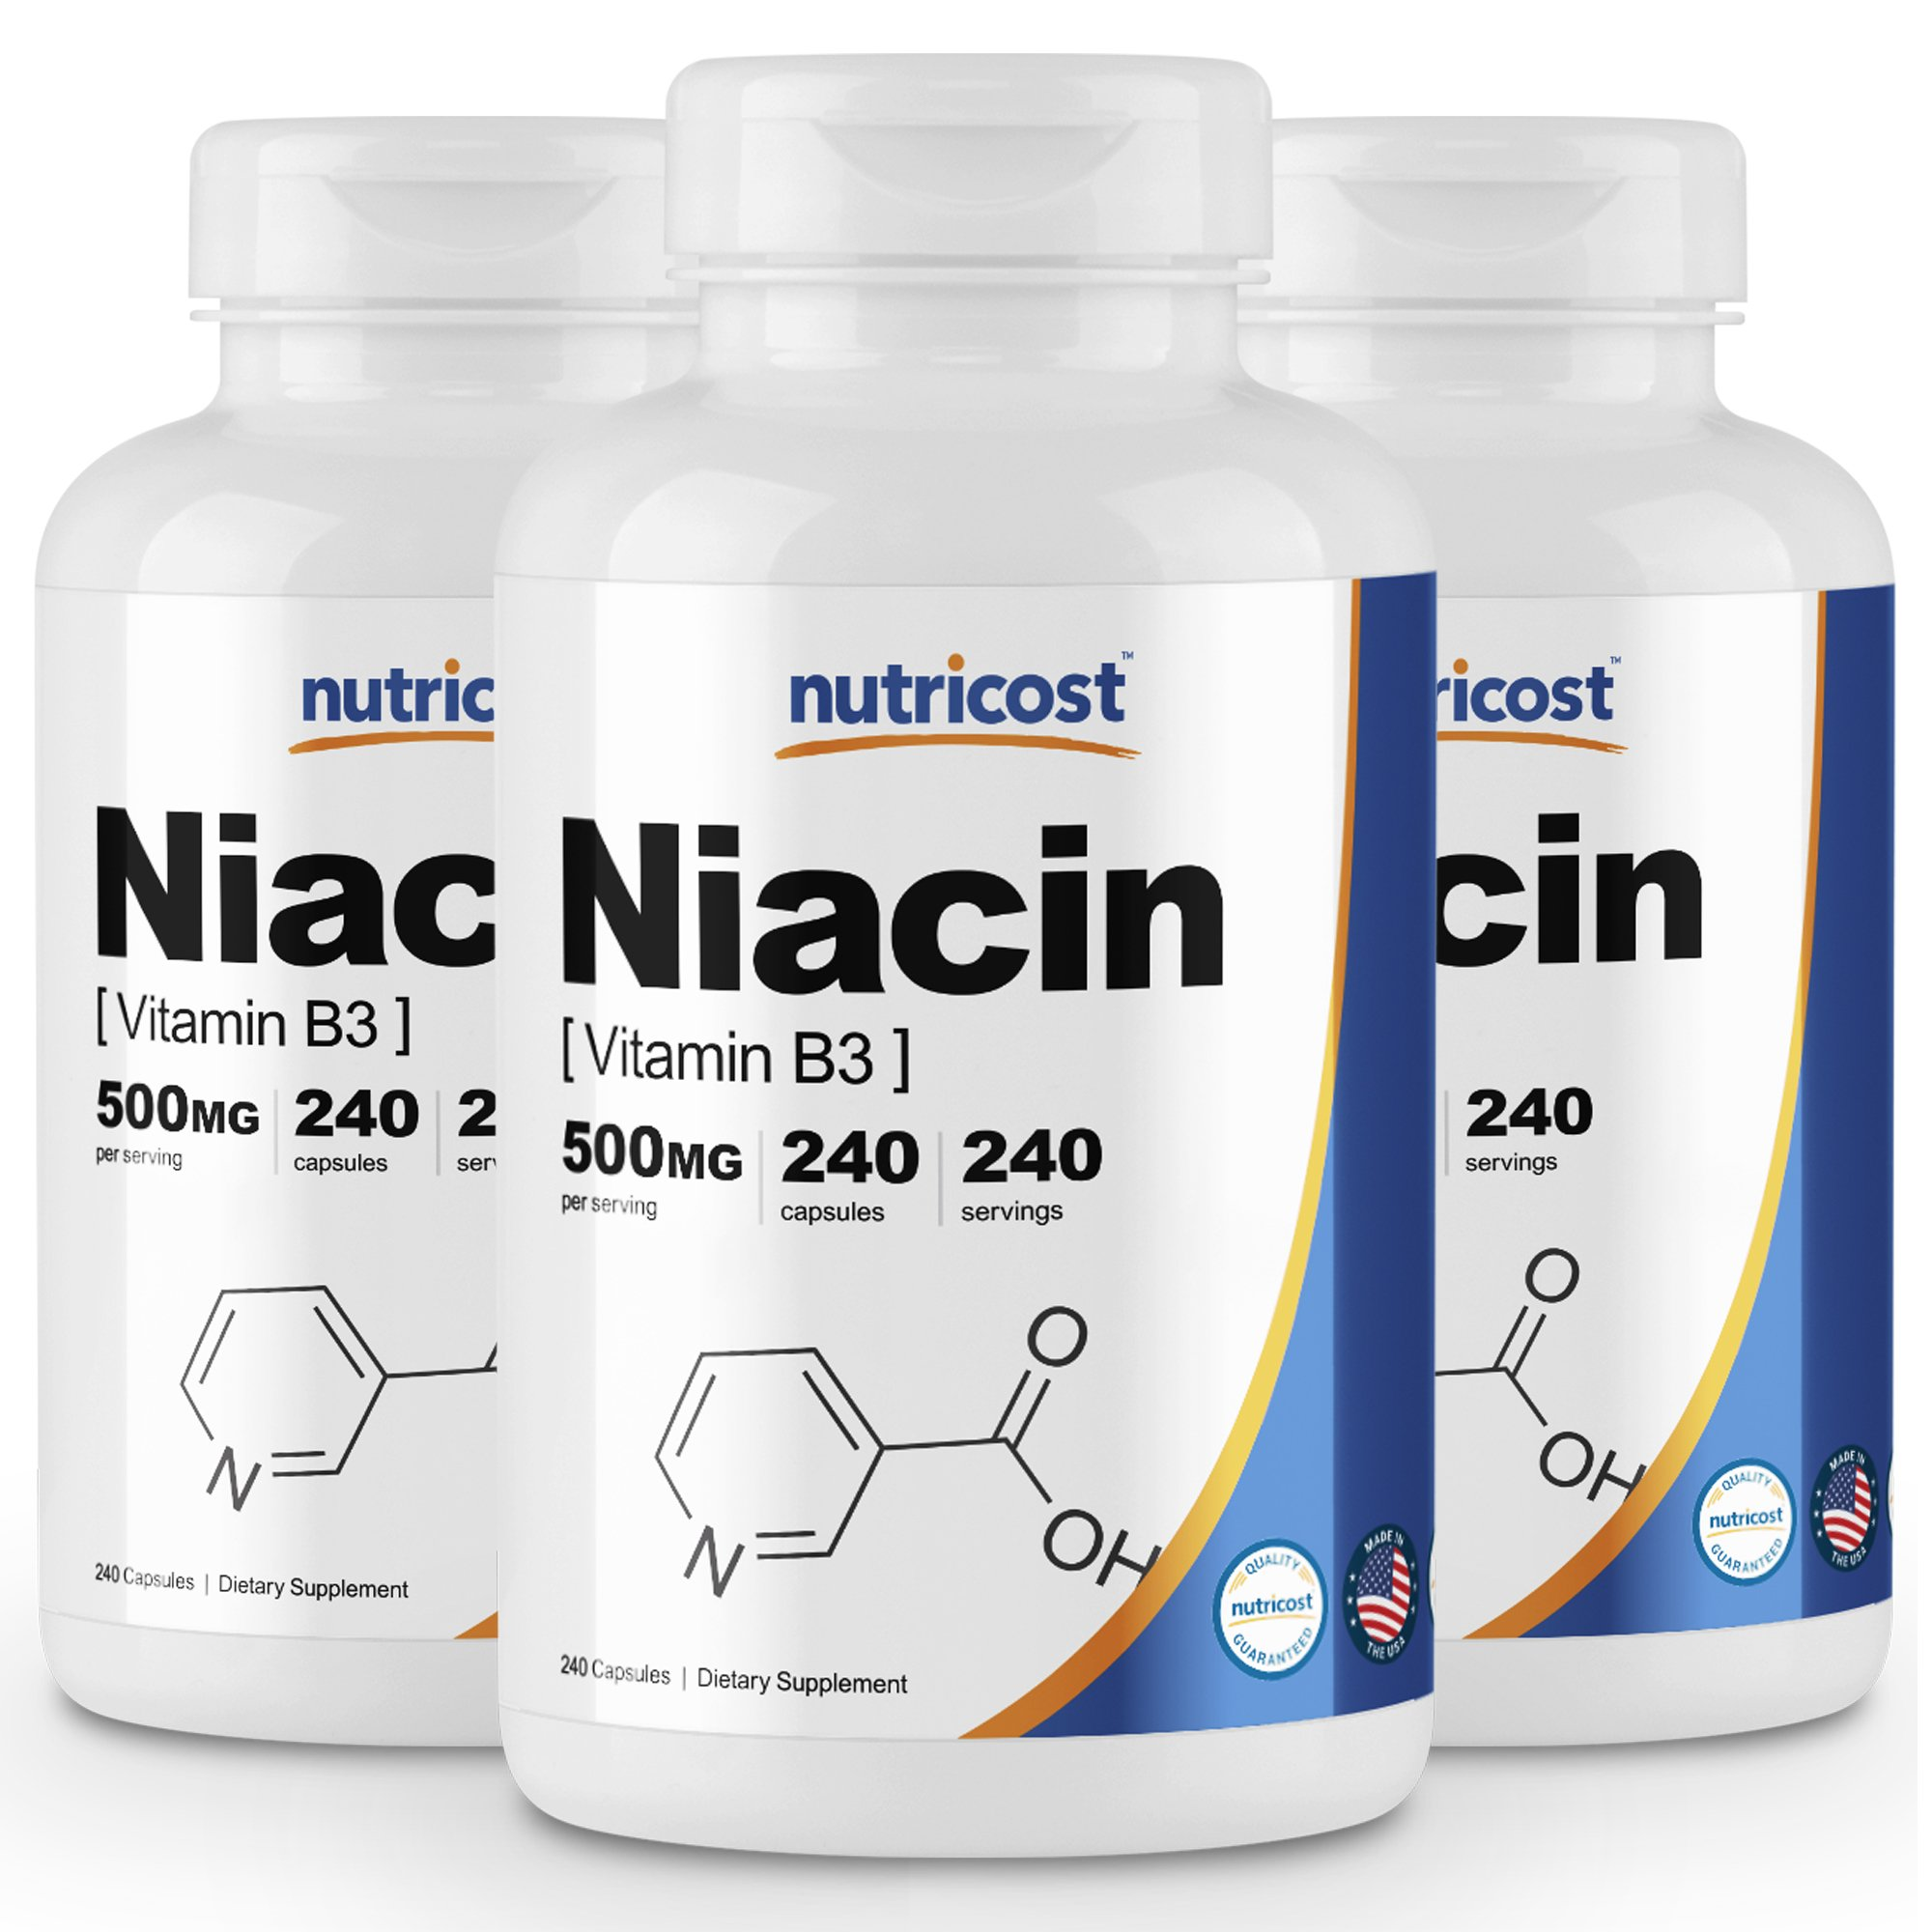 Nutricost Niacin (Vitamin B3) 500mg, 240 Capsules (3 Bottles) by Nutricost